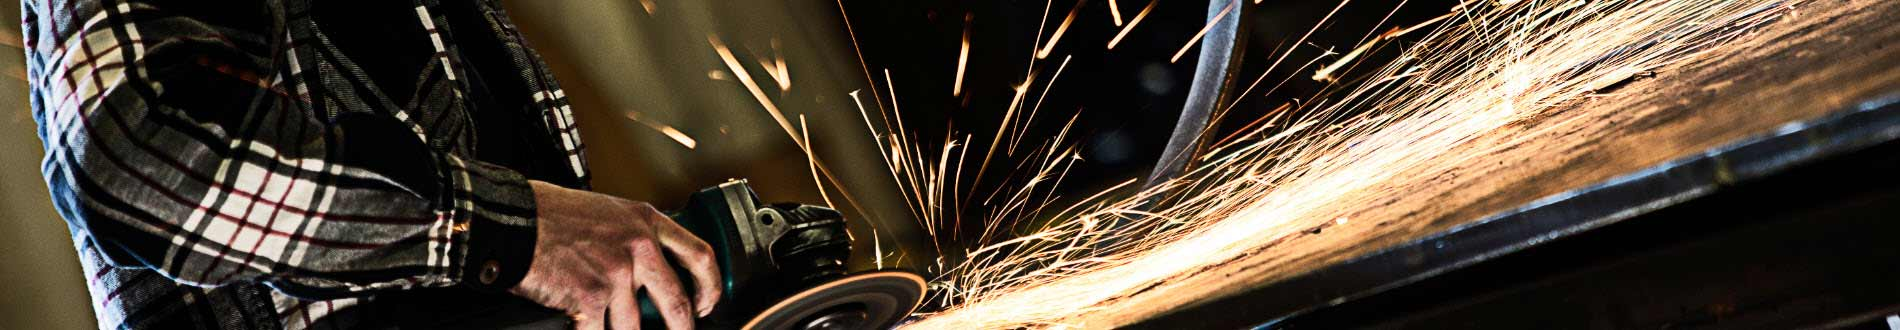 Grinding metal creates fiery sparks.